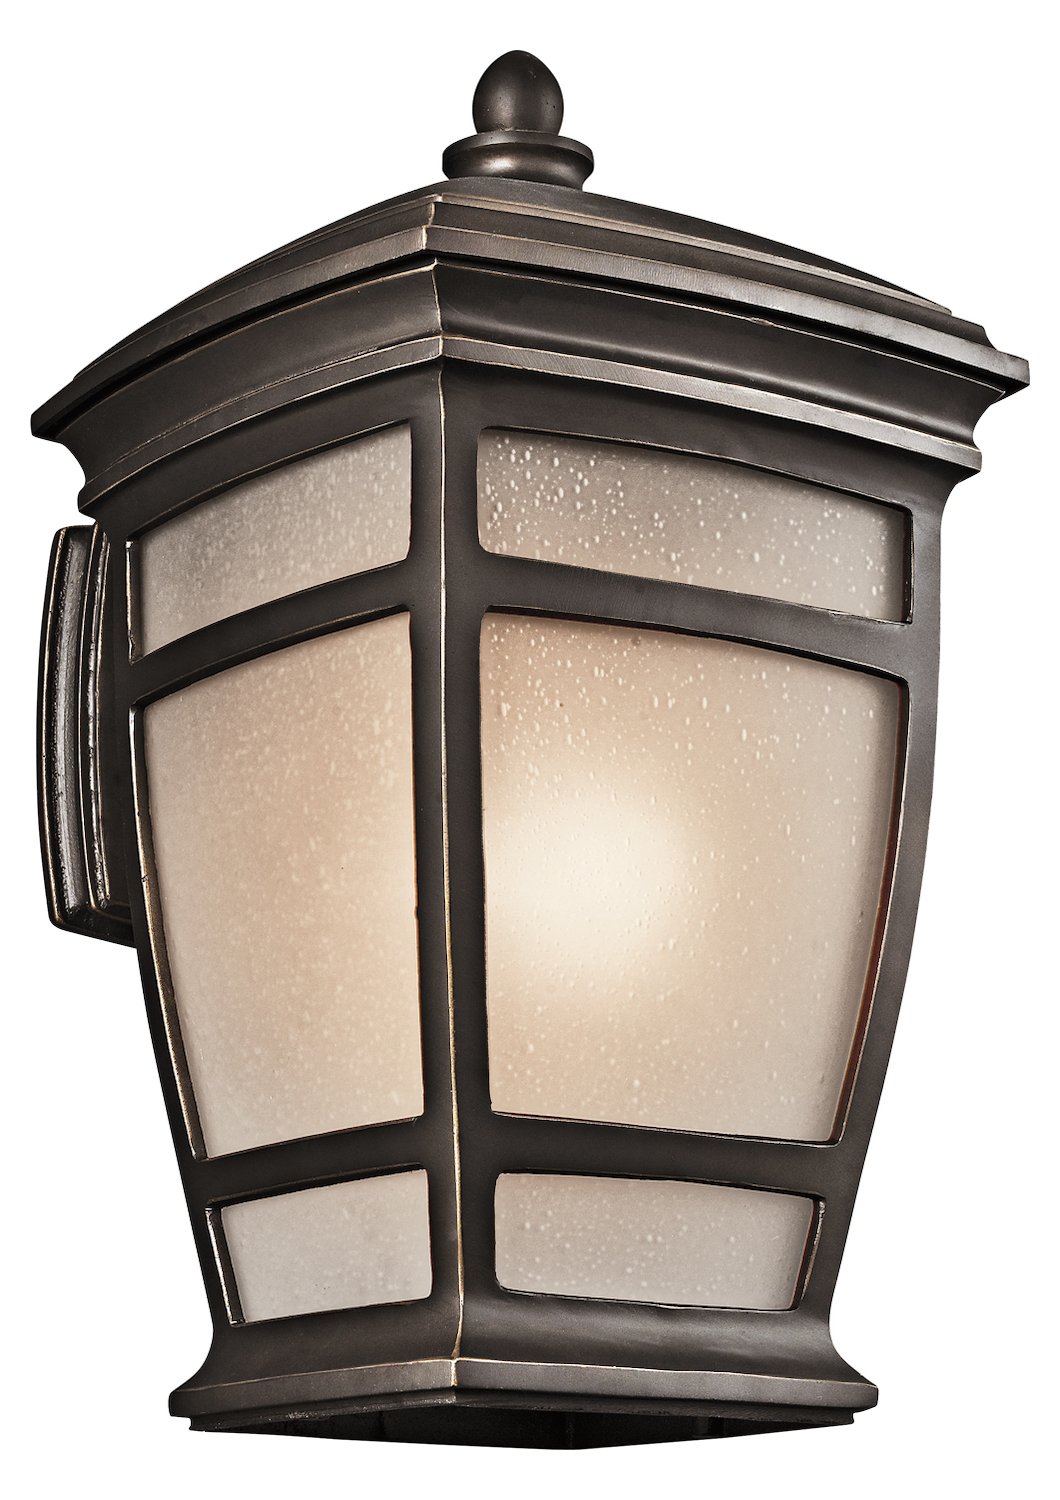 Kichler Rubbed Bronze Mcadams Collection 1 Light 21In. Outdoor Wall Light